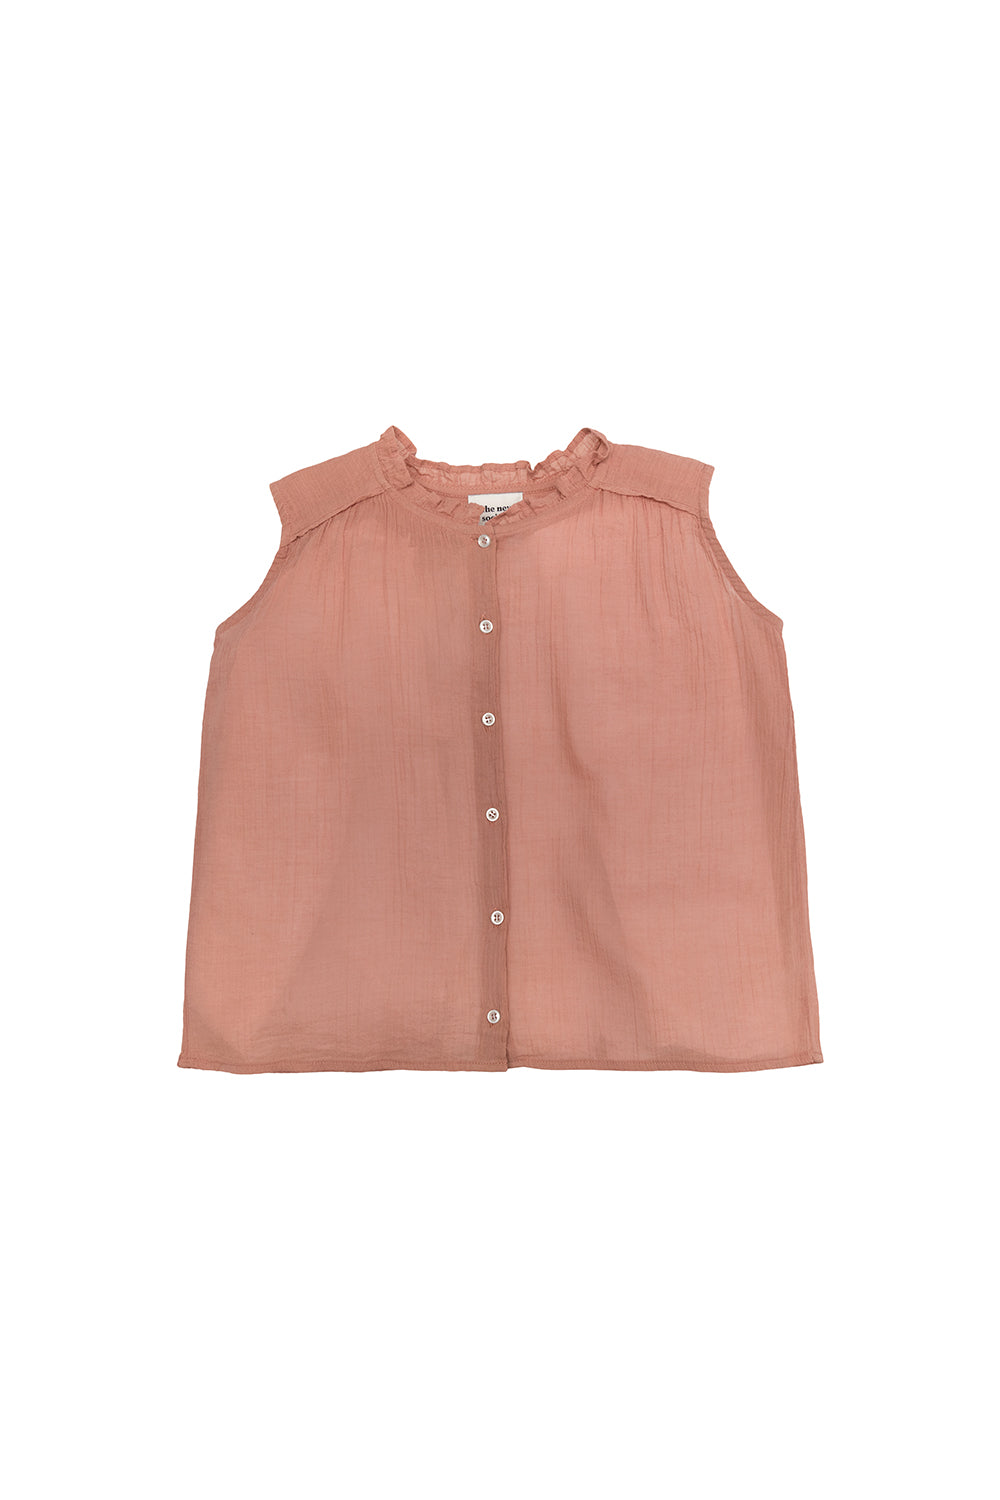 Lua Bambula Blouse - Rose Cloud